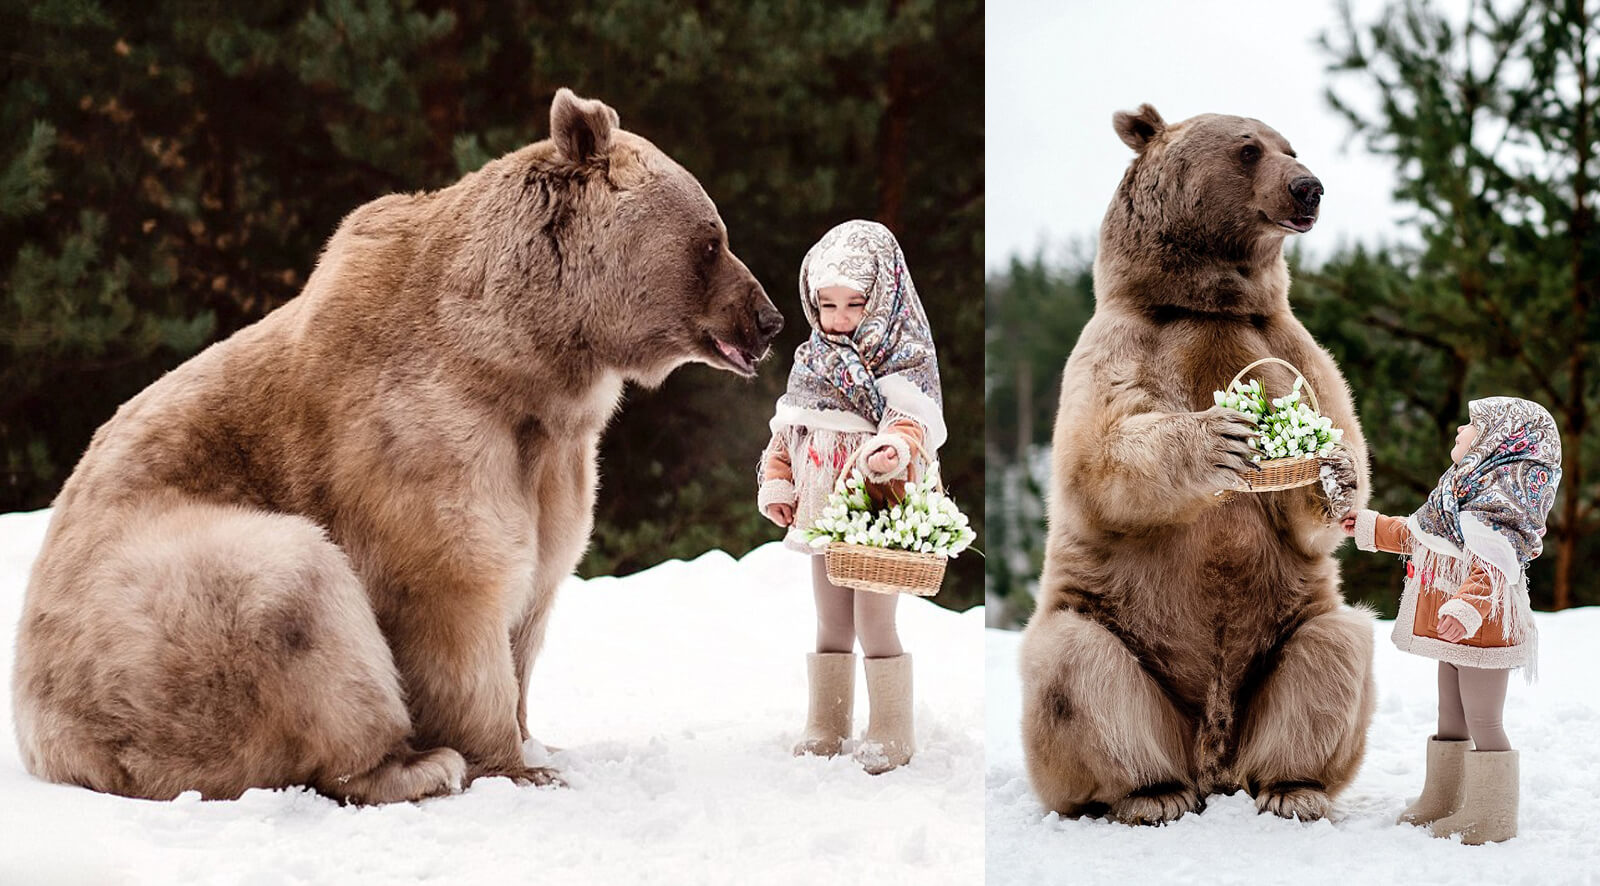 Astounding Photos Of Children Posing With Huge Grizzly Bear